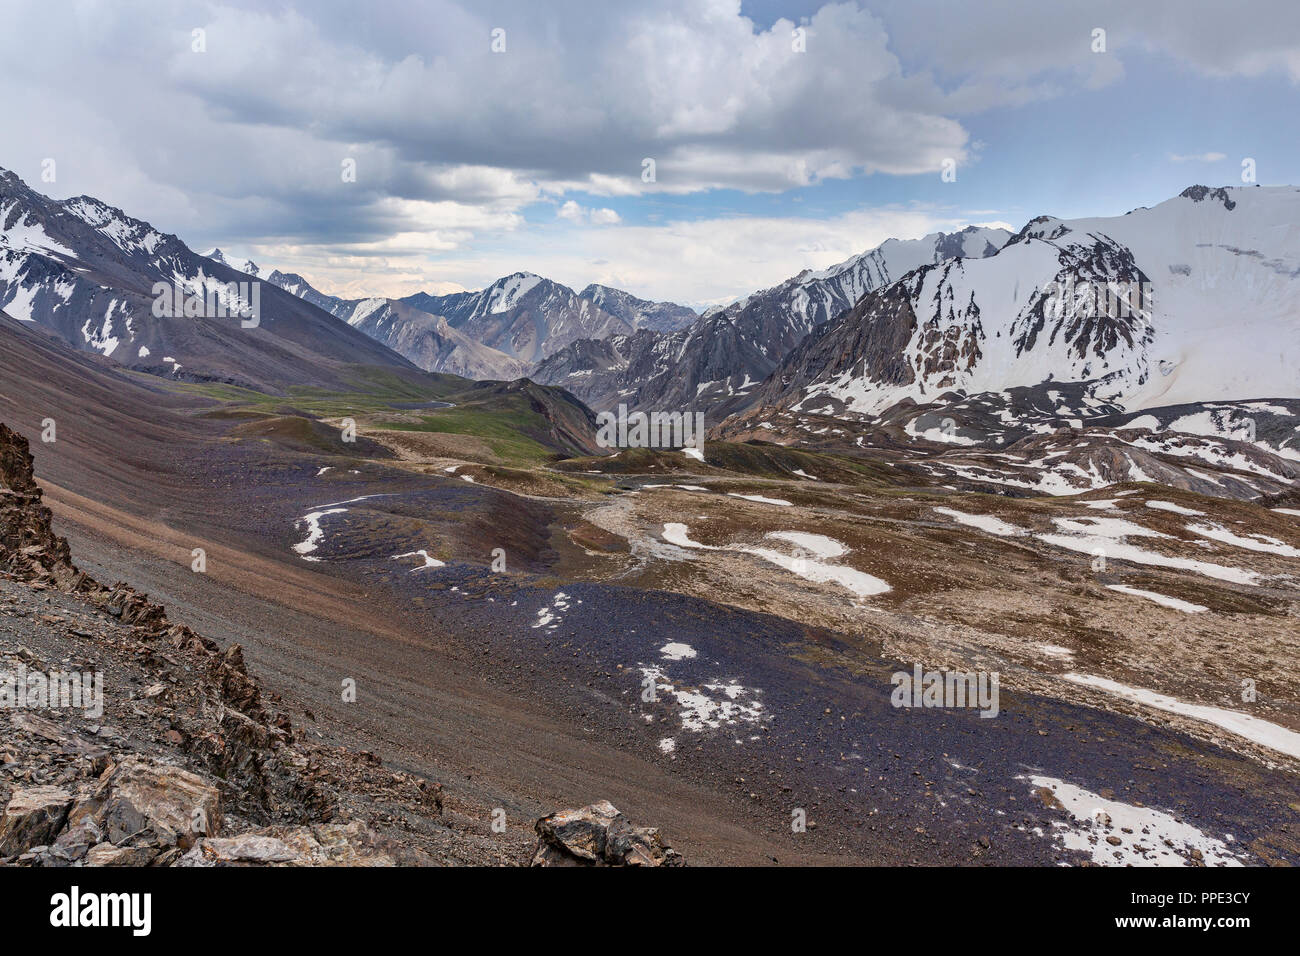 The incredible Heights of Alay Trek in Southwest Kyrgyzstan that takes in 4 3000+ meter passes. - Stock Image